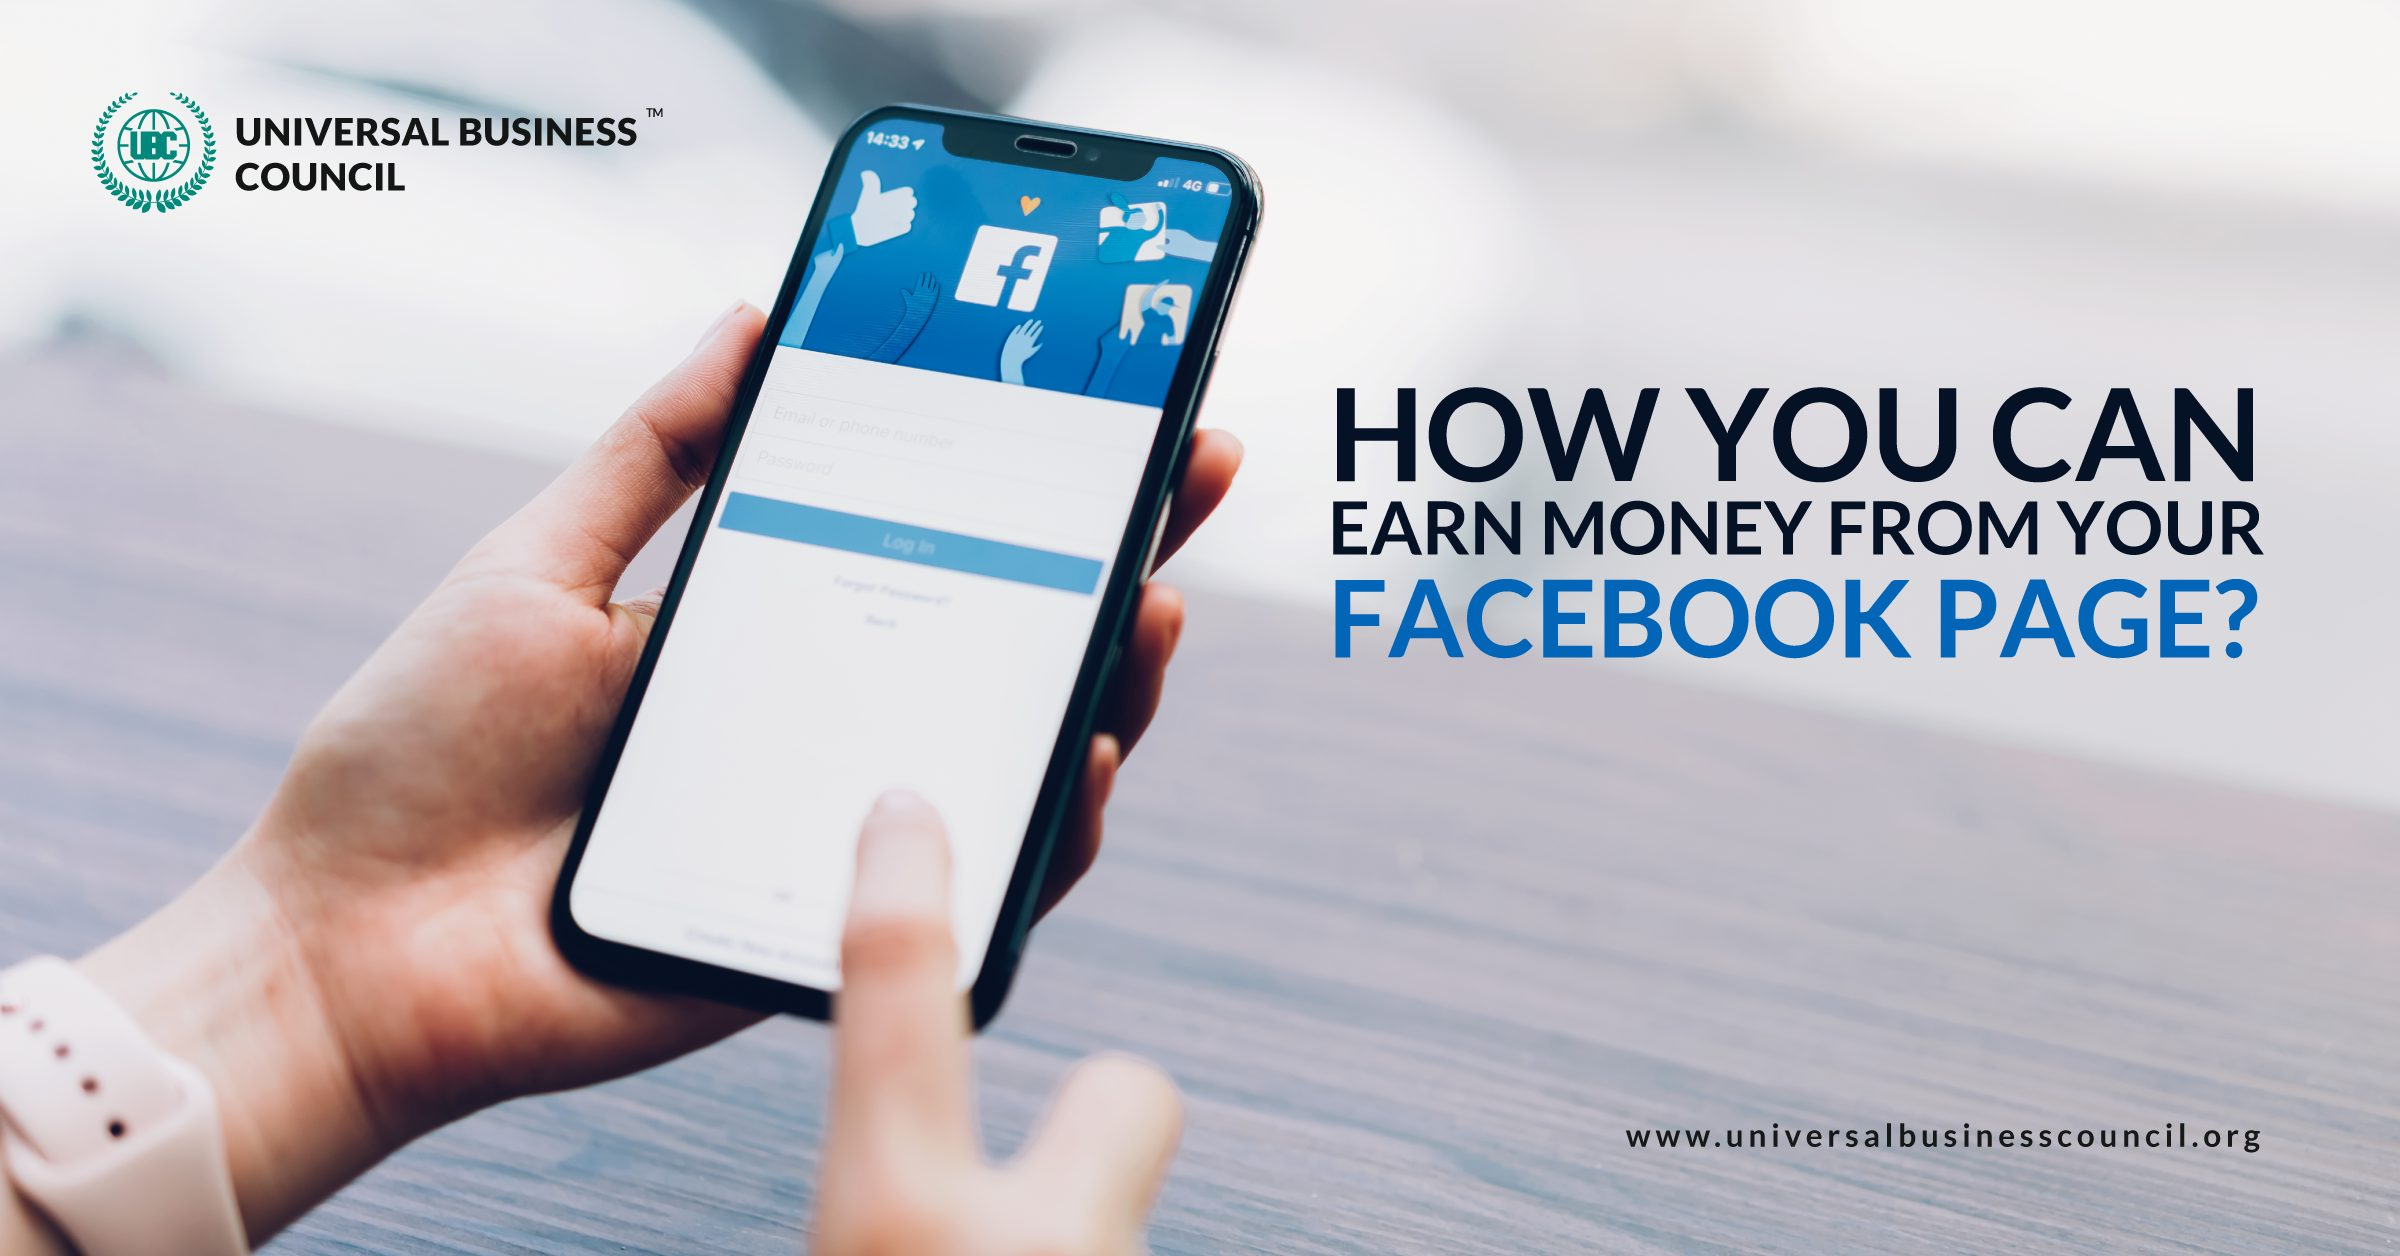 How-you-can-earn-money-from-your-facebook-page